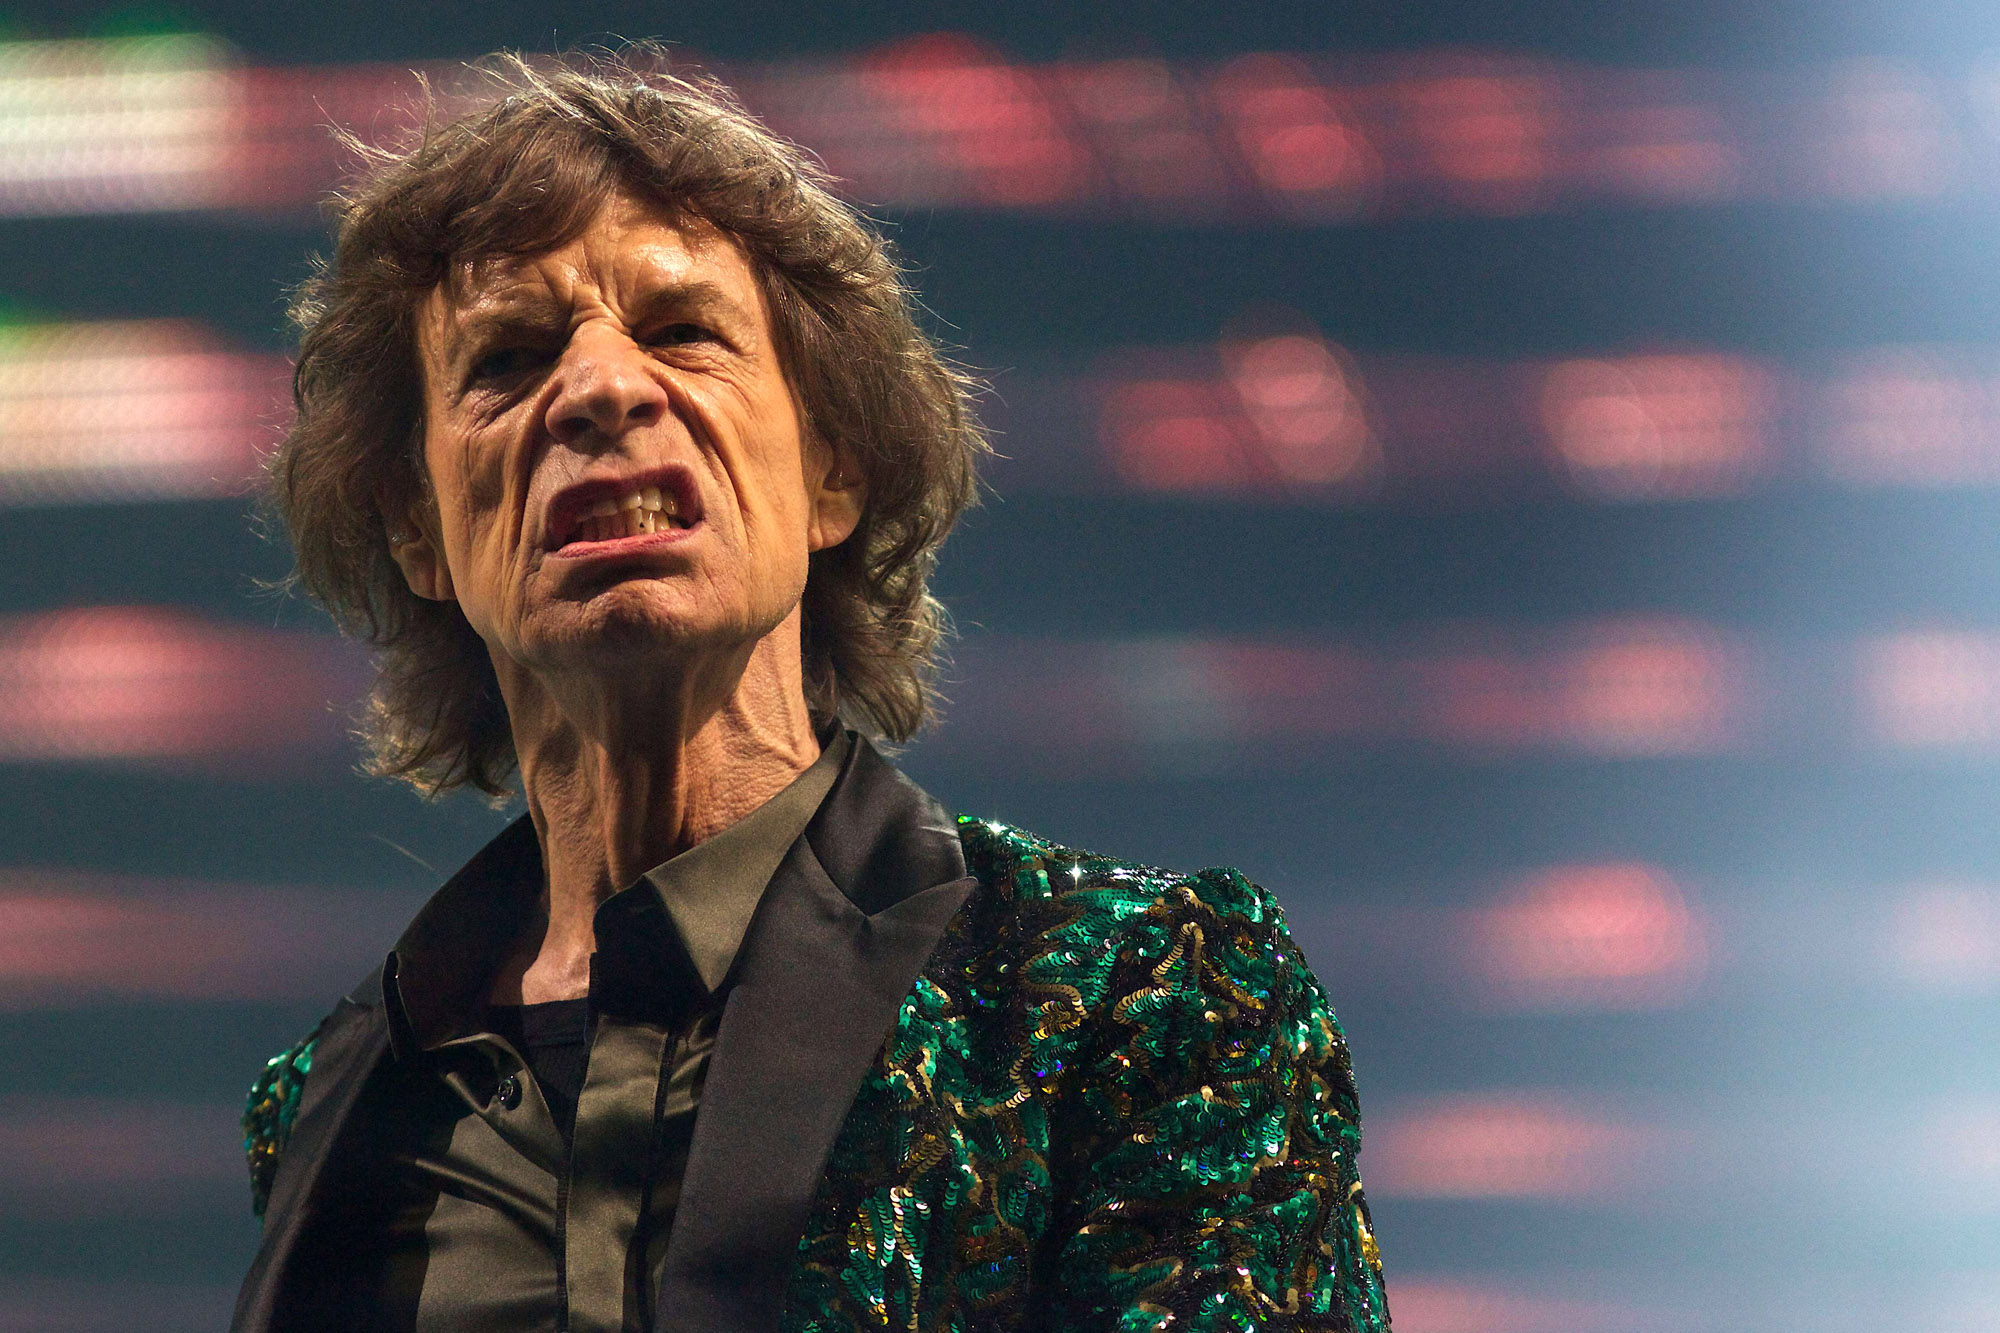 British musician Mick Jagger is about to become a great-grandfather at age 70. Photo: Getty Images